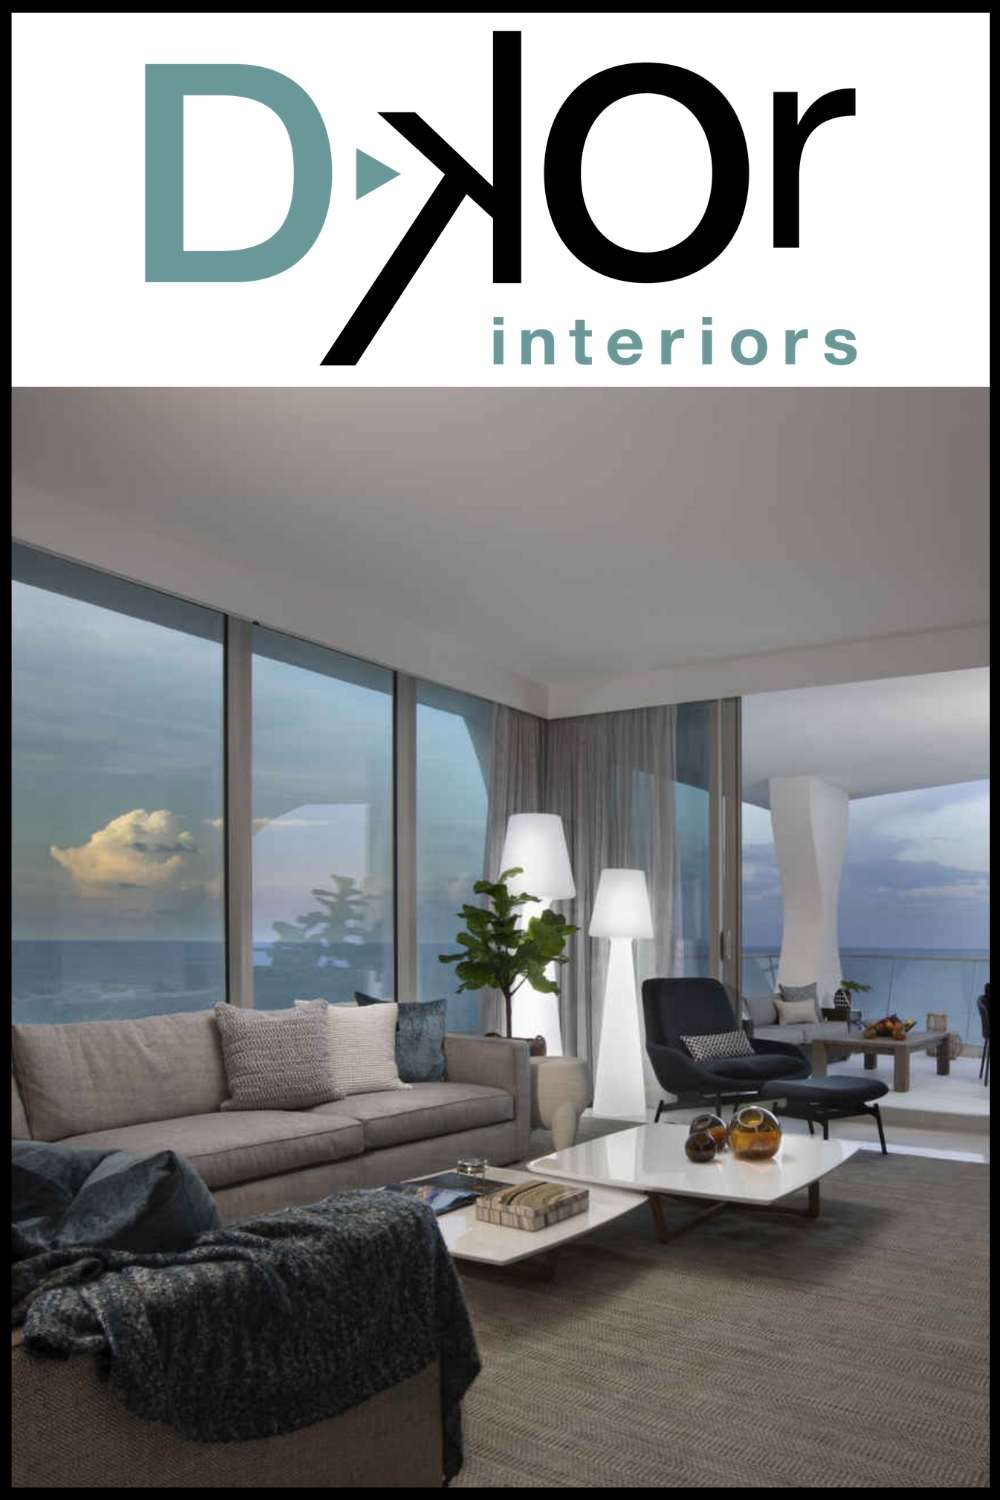 Indoor outdoor living room designed by Ivonne Ronderos of DKor Interiors, featuring Seasonal Living furniture on the balcony